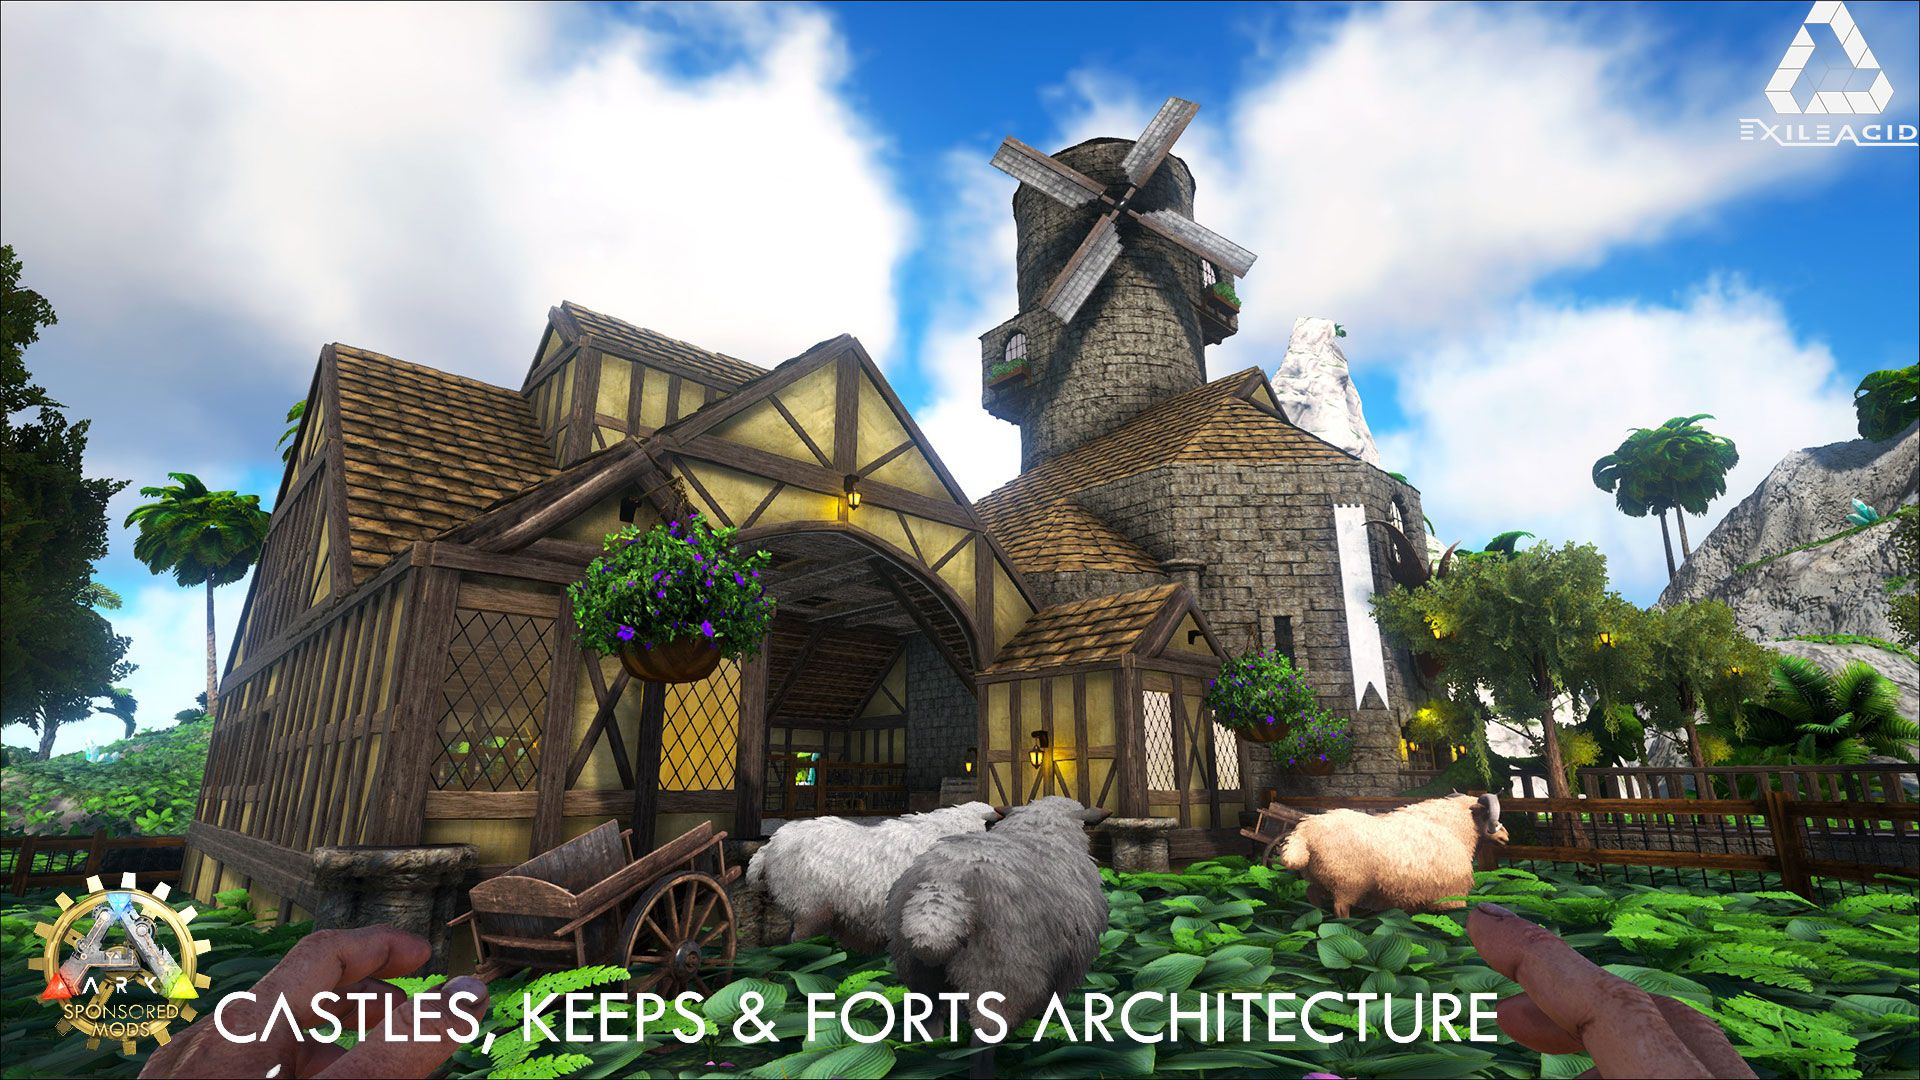 Exceptional Steam Workshop :: Castles, Keeps, And Forts Medieval Architecture